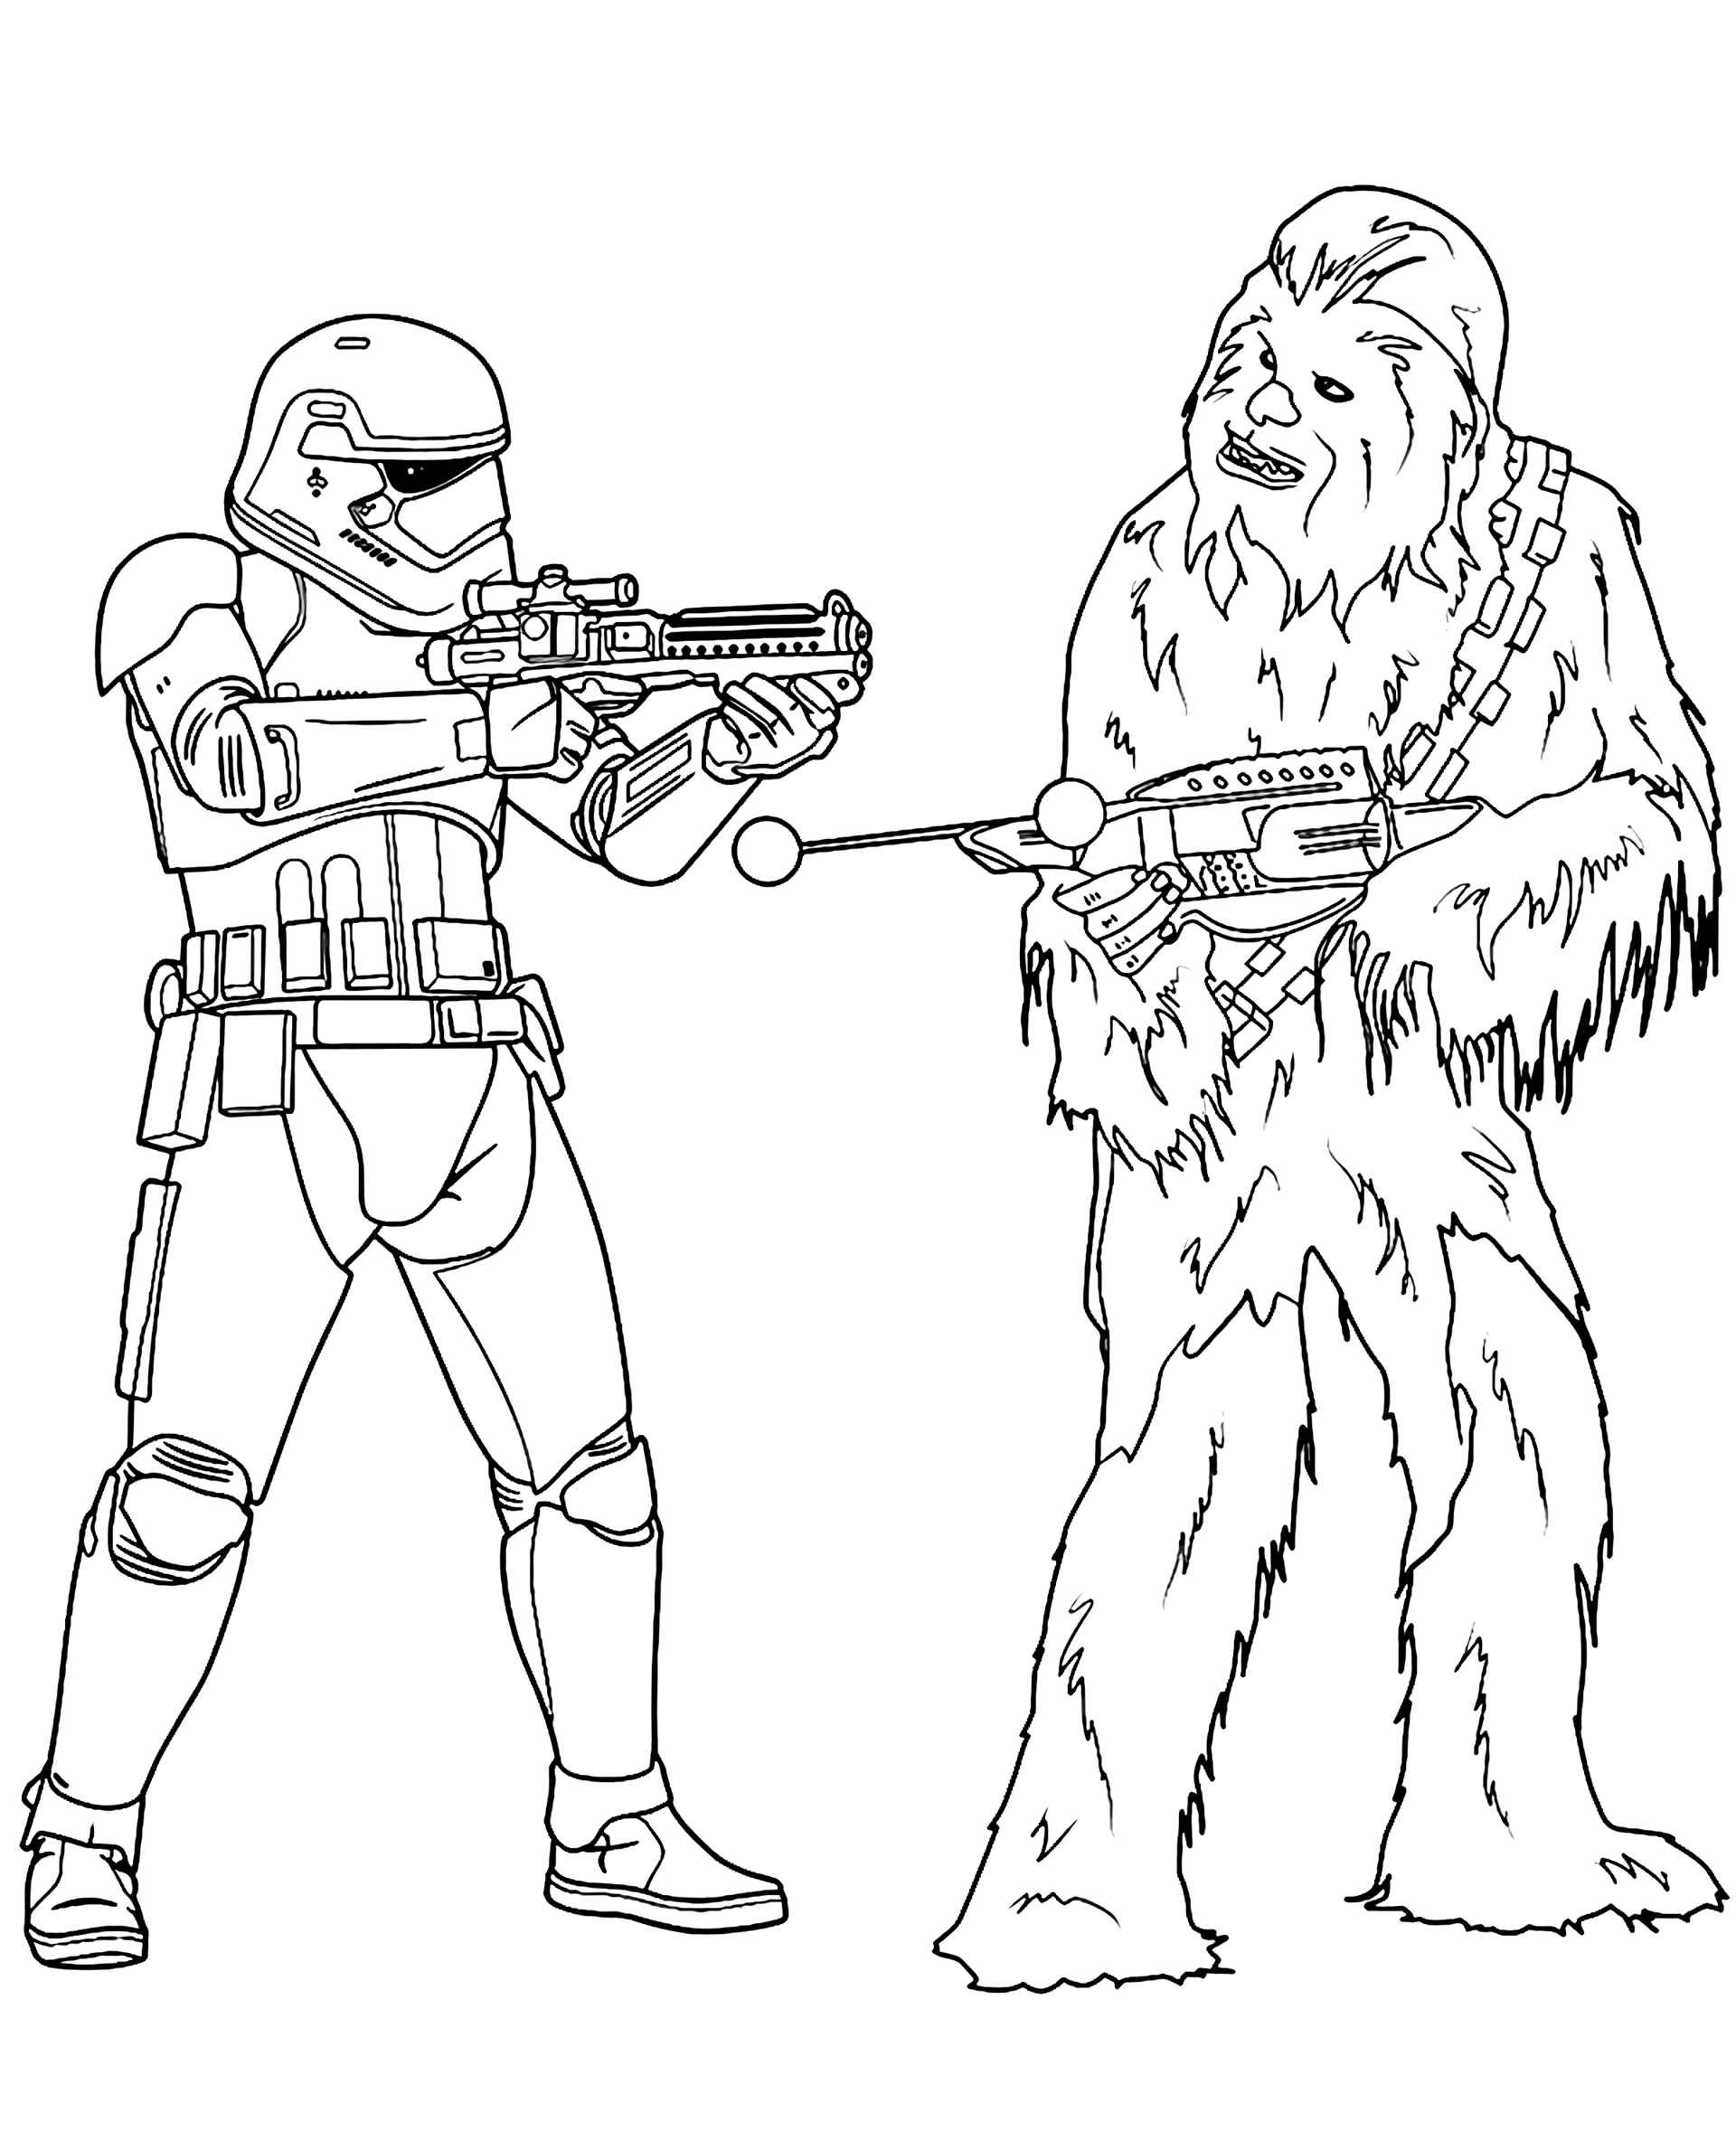 Chewbacca Vs. Storm Trooper In Star Wars Coloring Page